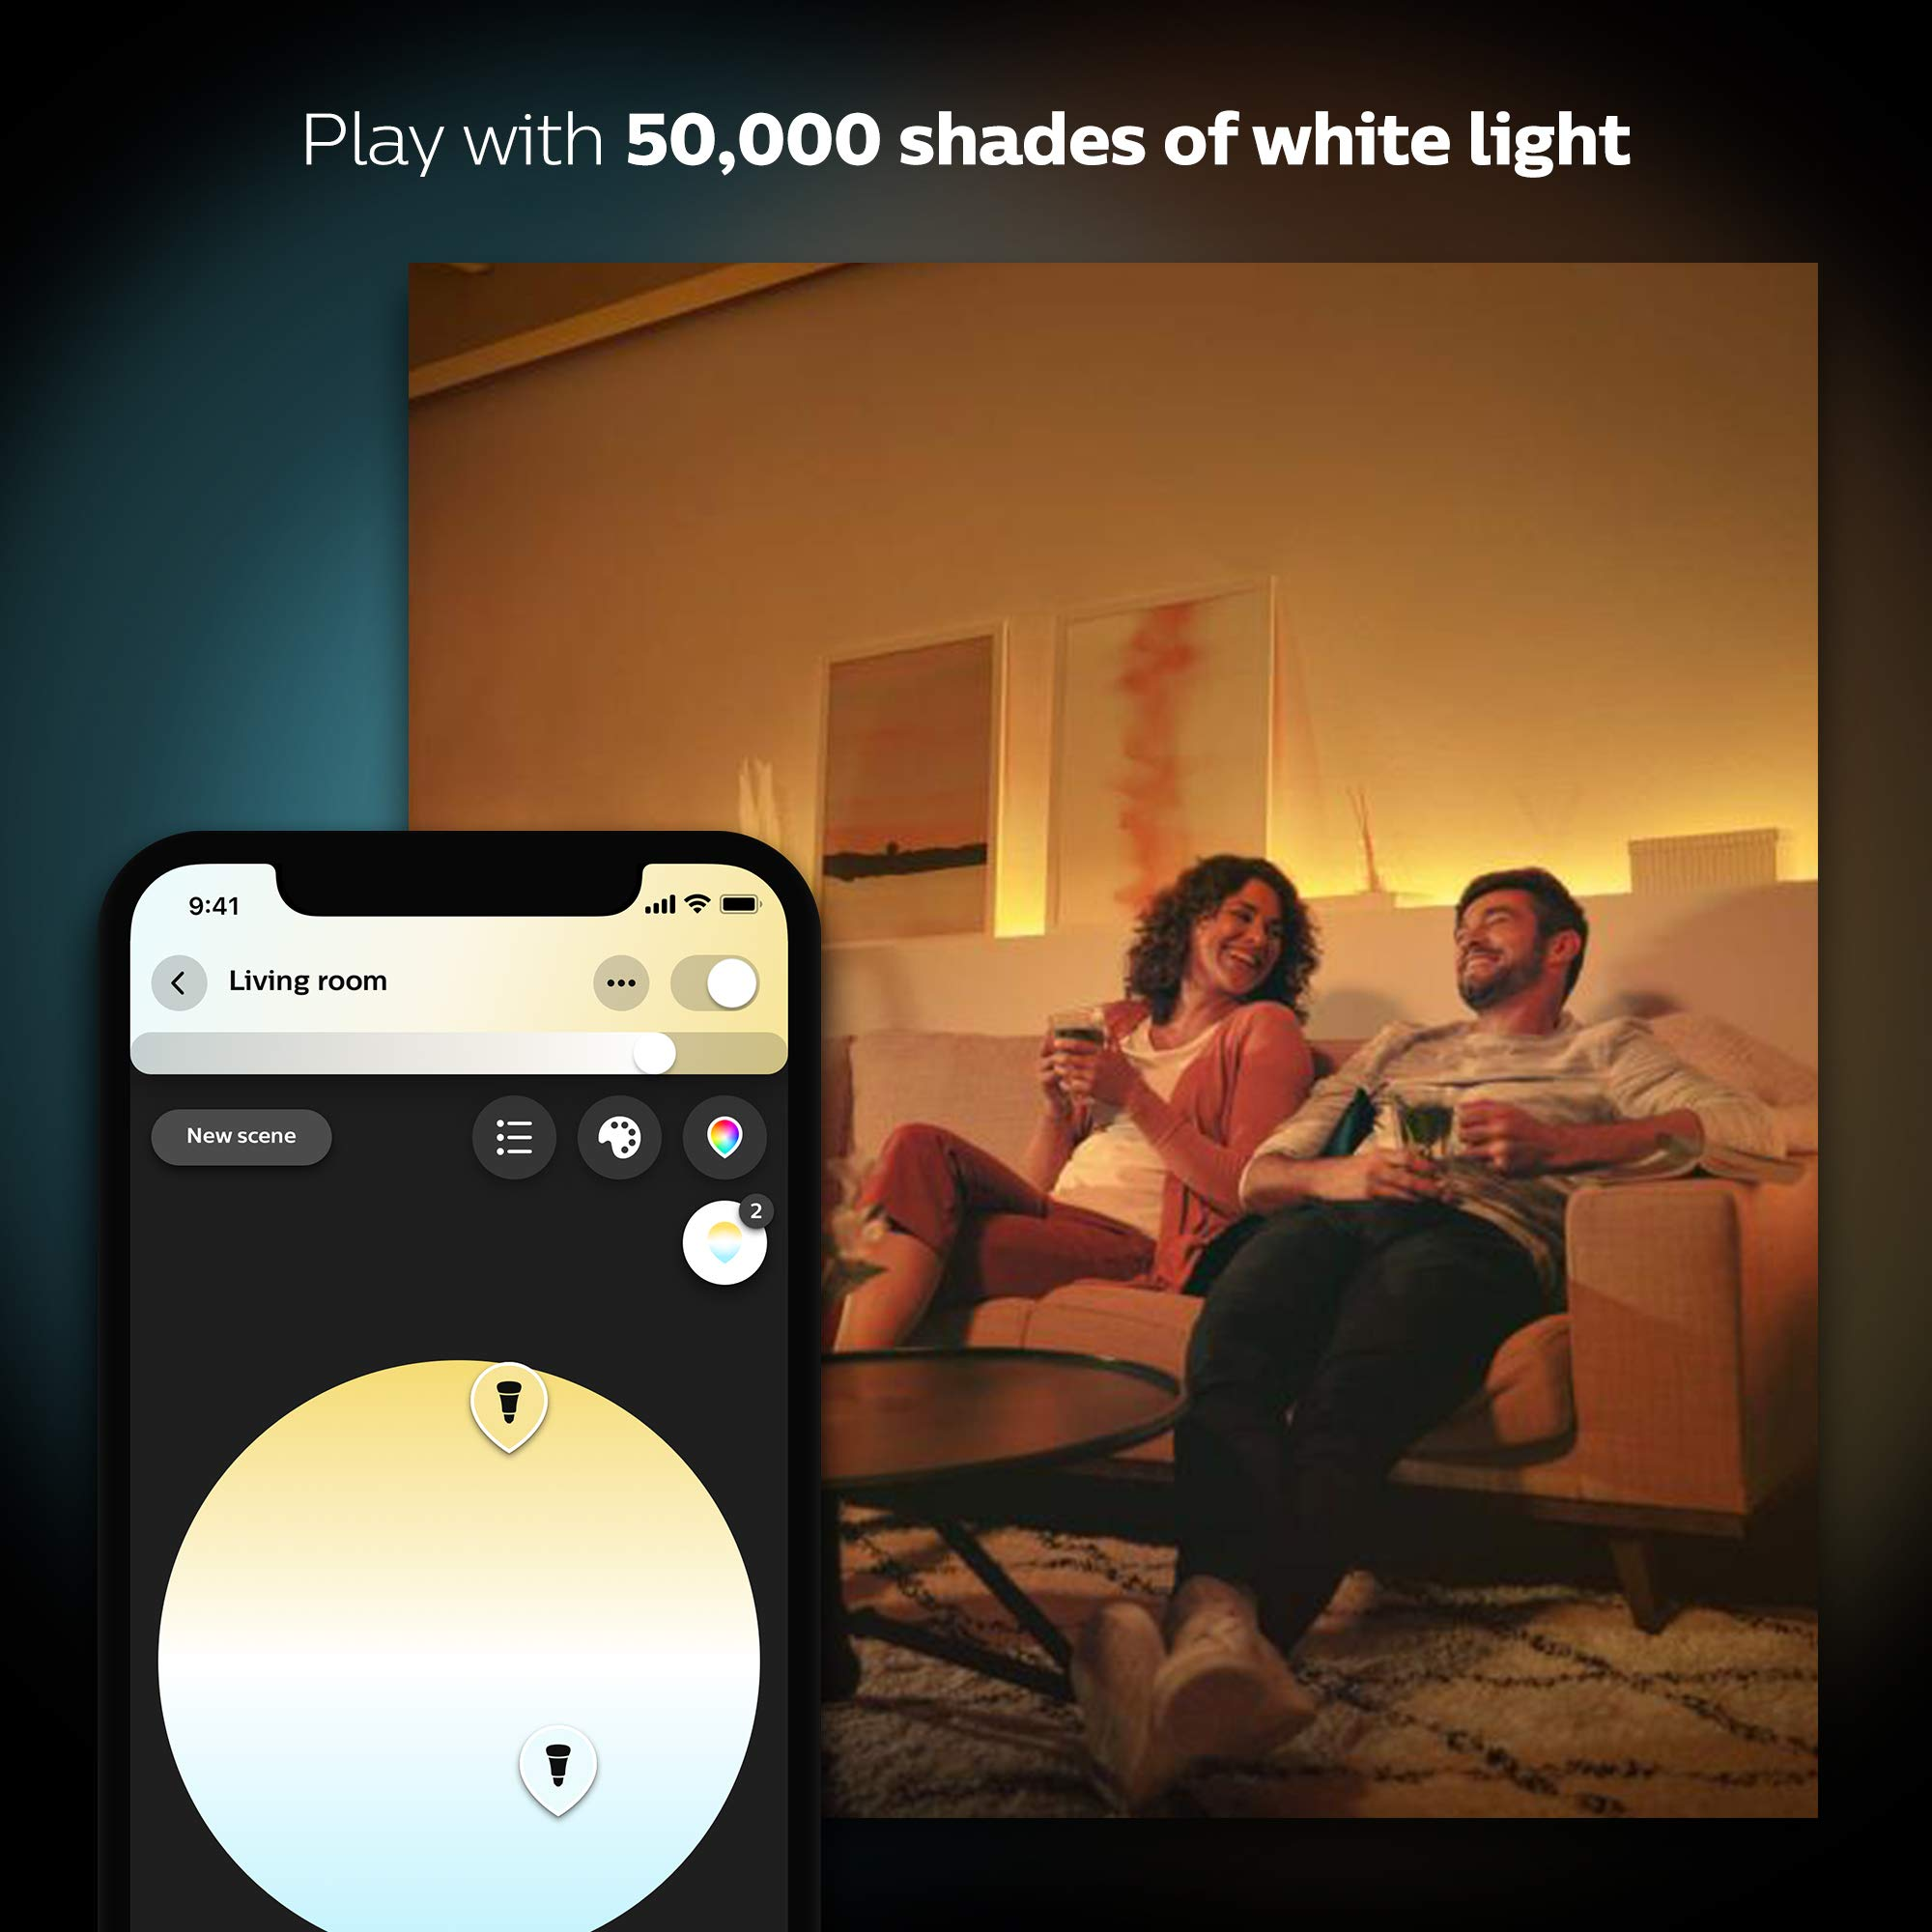 Philips Hue White and Color Ambiance A19 60W Equivalent LED Smart Light Bulb Starter Kit  4 A19 Smart Bulbs and 1 Bridge, Works with Alexa, Apple HomeKit and Google Assistant (California Residents)